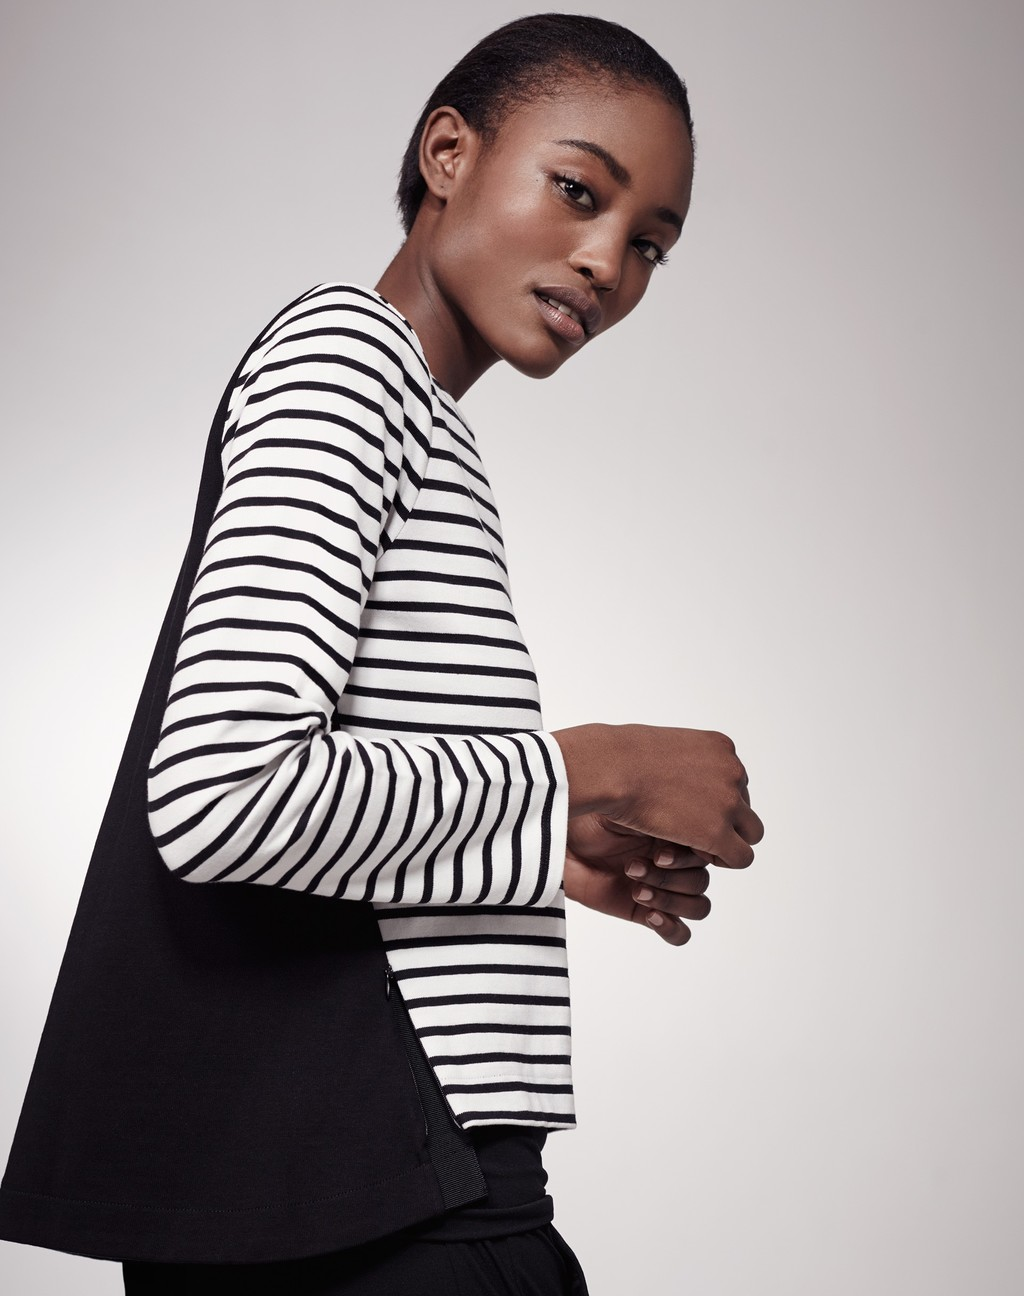 Boxy Breton Top White/Black - pattern: horizontal stripes; predominant colour: white; secondary colour: black; occasions: casual; length: standard; style: top; fibres: cotton - 100%; fit: body skimming; neckline: crew; sleeve length: long sleeve; sleeve style: standard; pattern type: fabric; pattern size: standard; texture group: jersey - stretchy/drapey; multicoloured: multicoloured; season: s/s 2016; wardrobe: basic